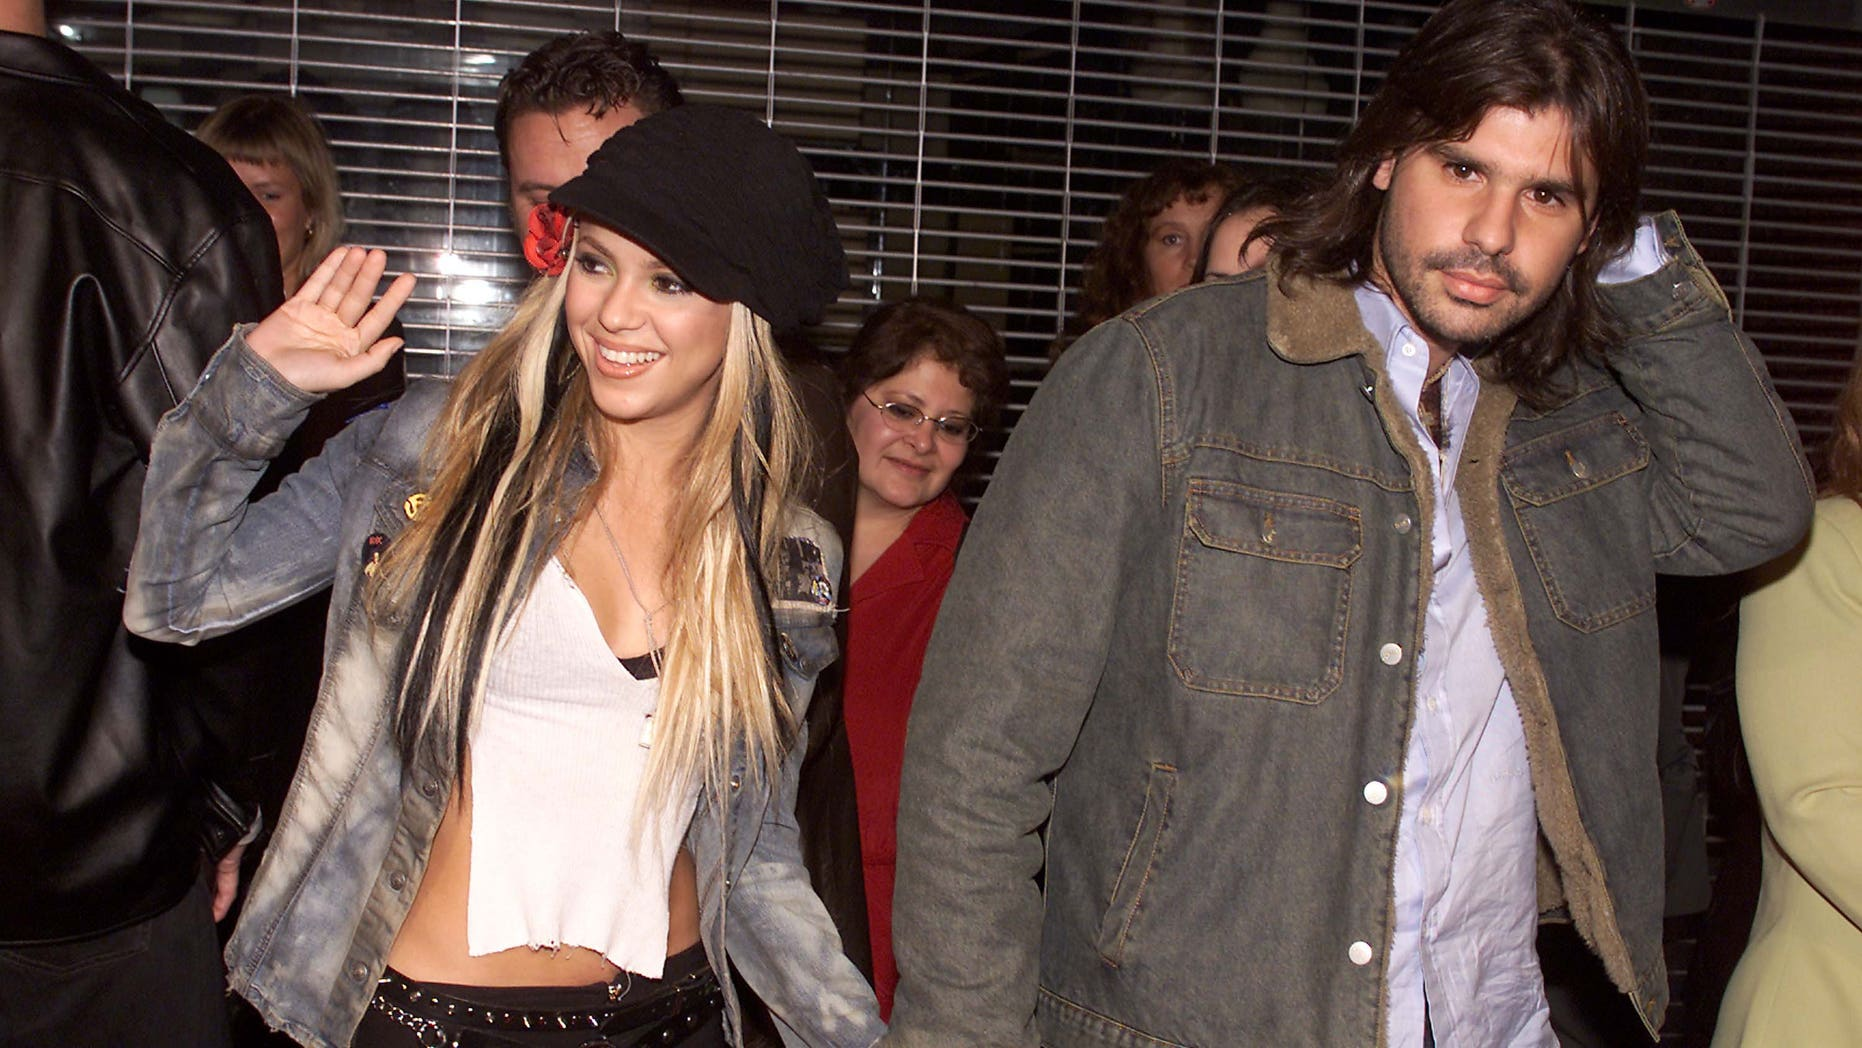 """Shakira and boyfriend Antonio de la Rua at the El Rey Theater in Los Angeles to help Mick Jagger celebrate the release of his new solo album """"Goddess in the Doorway"""" with a live performance. Thursday, November 15, 2001. Photo by Kevin Winter/Getty Images."""